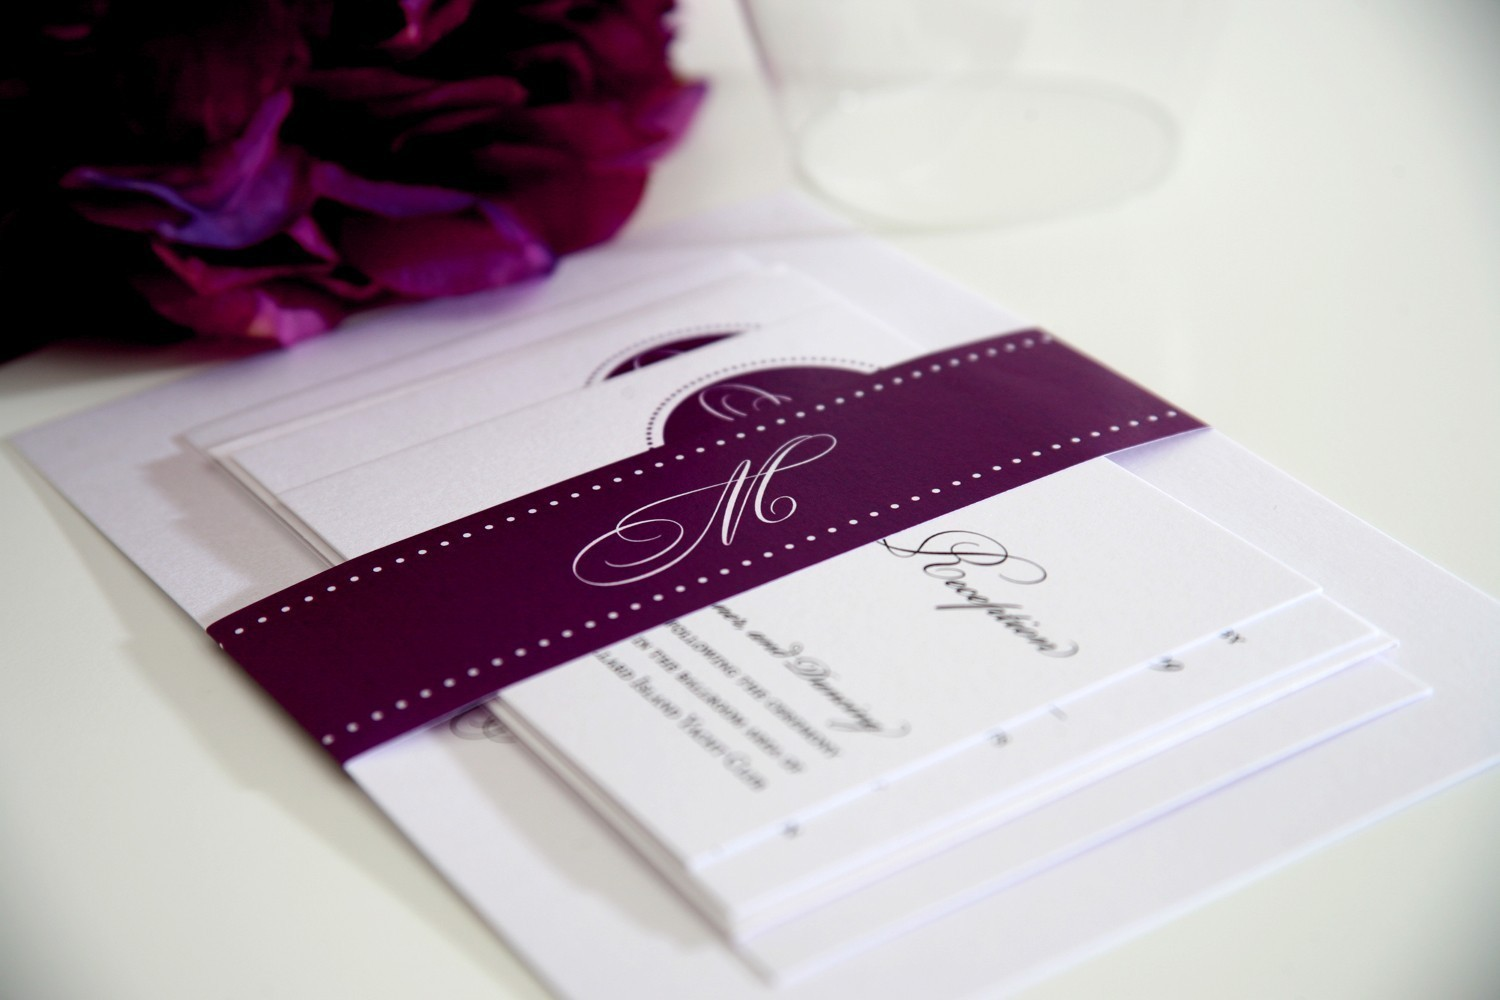 Cheap wedding invitations wedding ideas cheap wedding invitations solutioingenieria